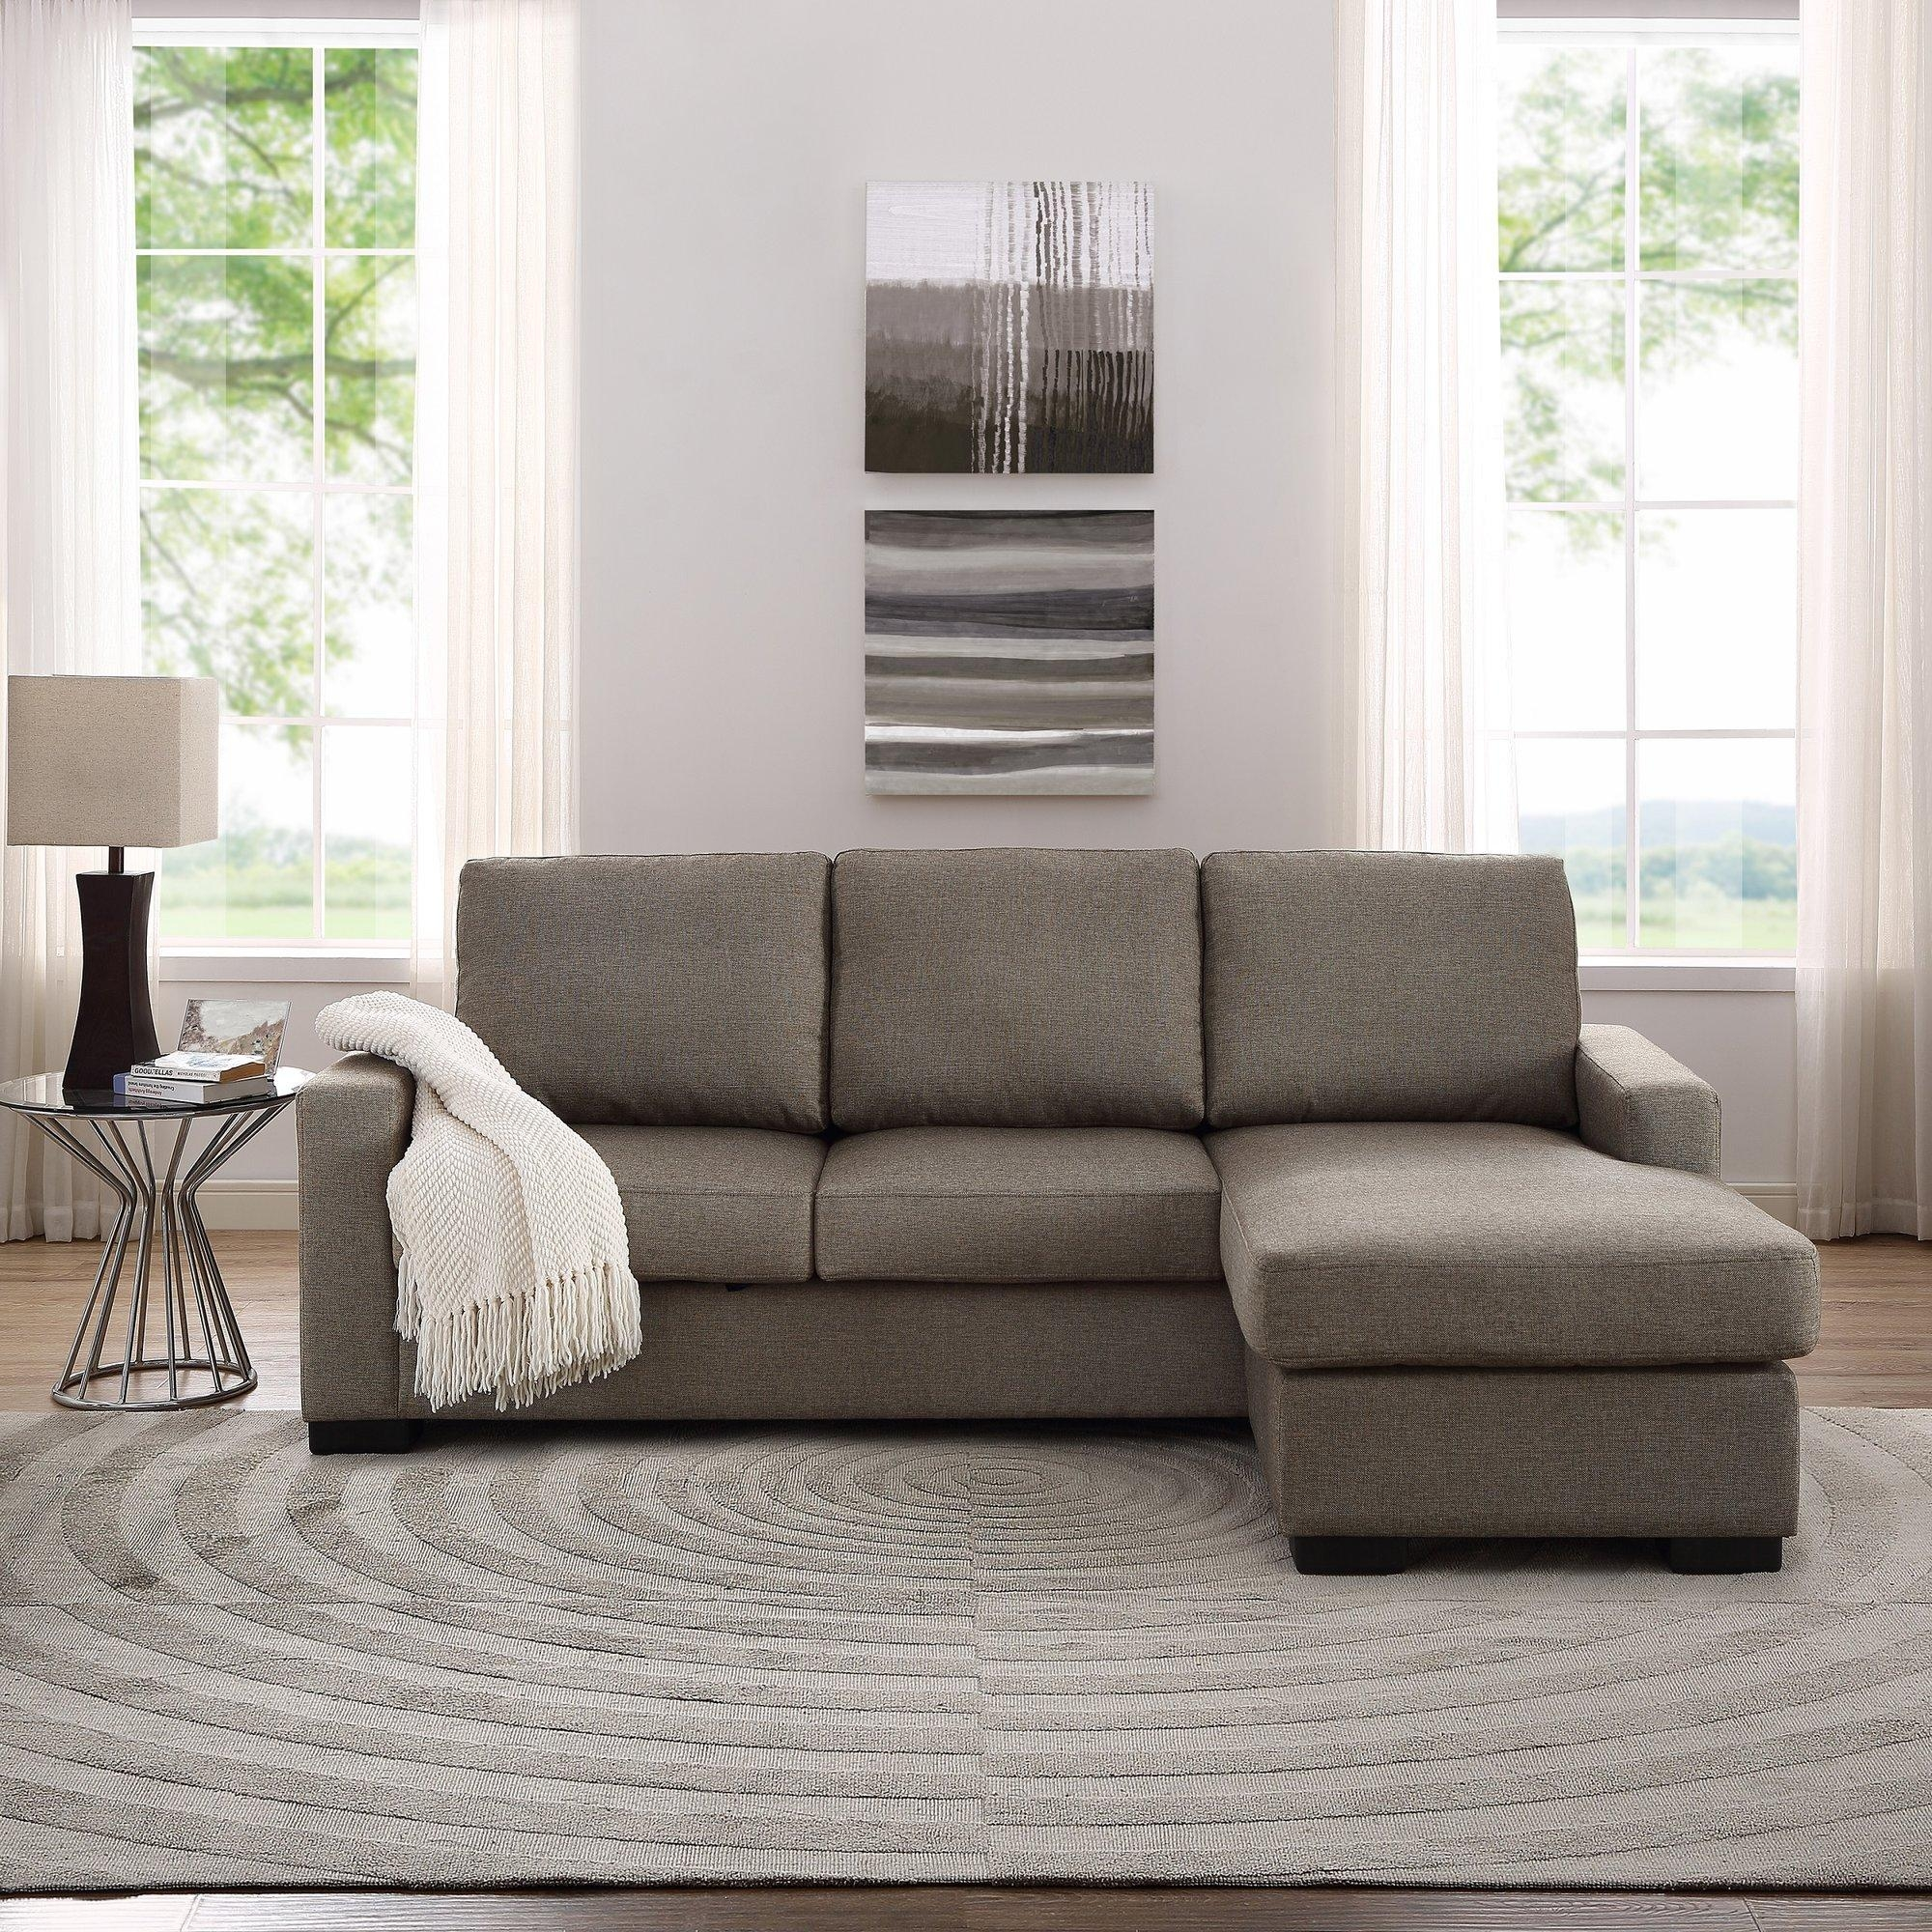 Furniture: Sectional Sofas Amazon | Tufted Sectional Sofa Chaise With Regard To Tufted Sectional With Chaise (Image 12 of 20)